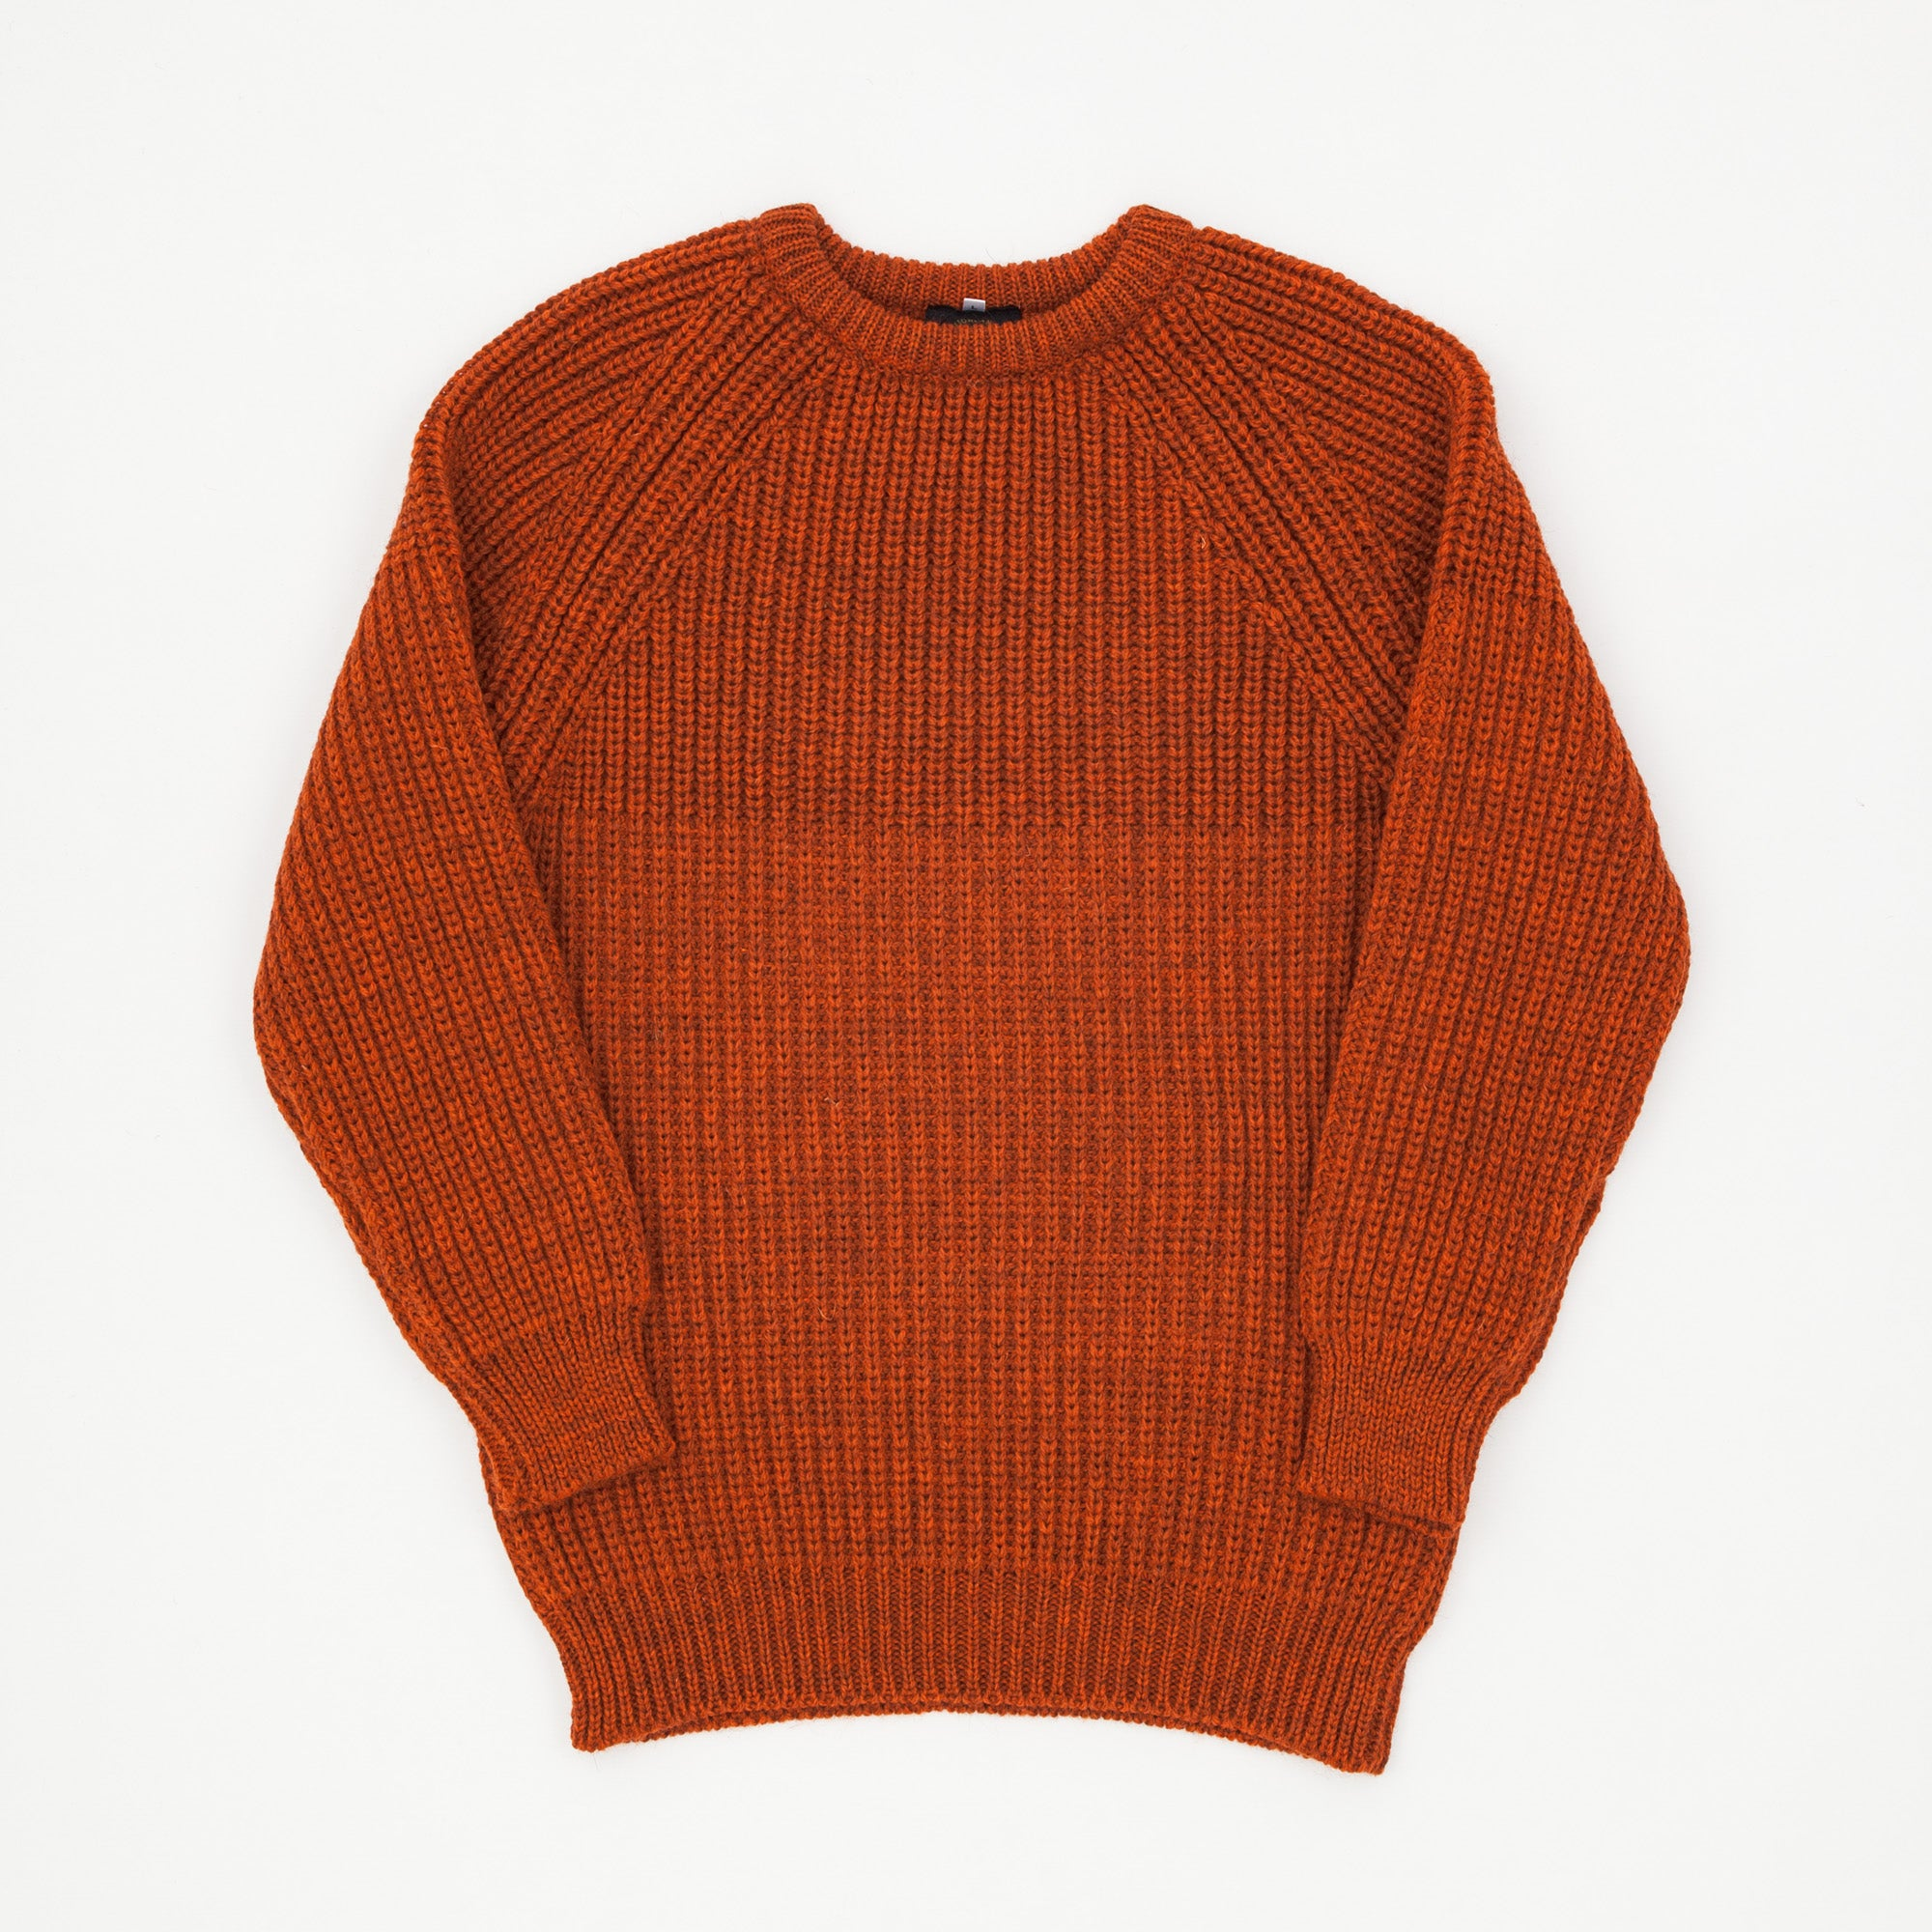 Crewneck Chunky Knit Wool Sweater